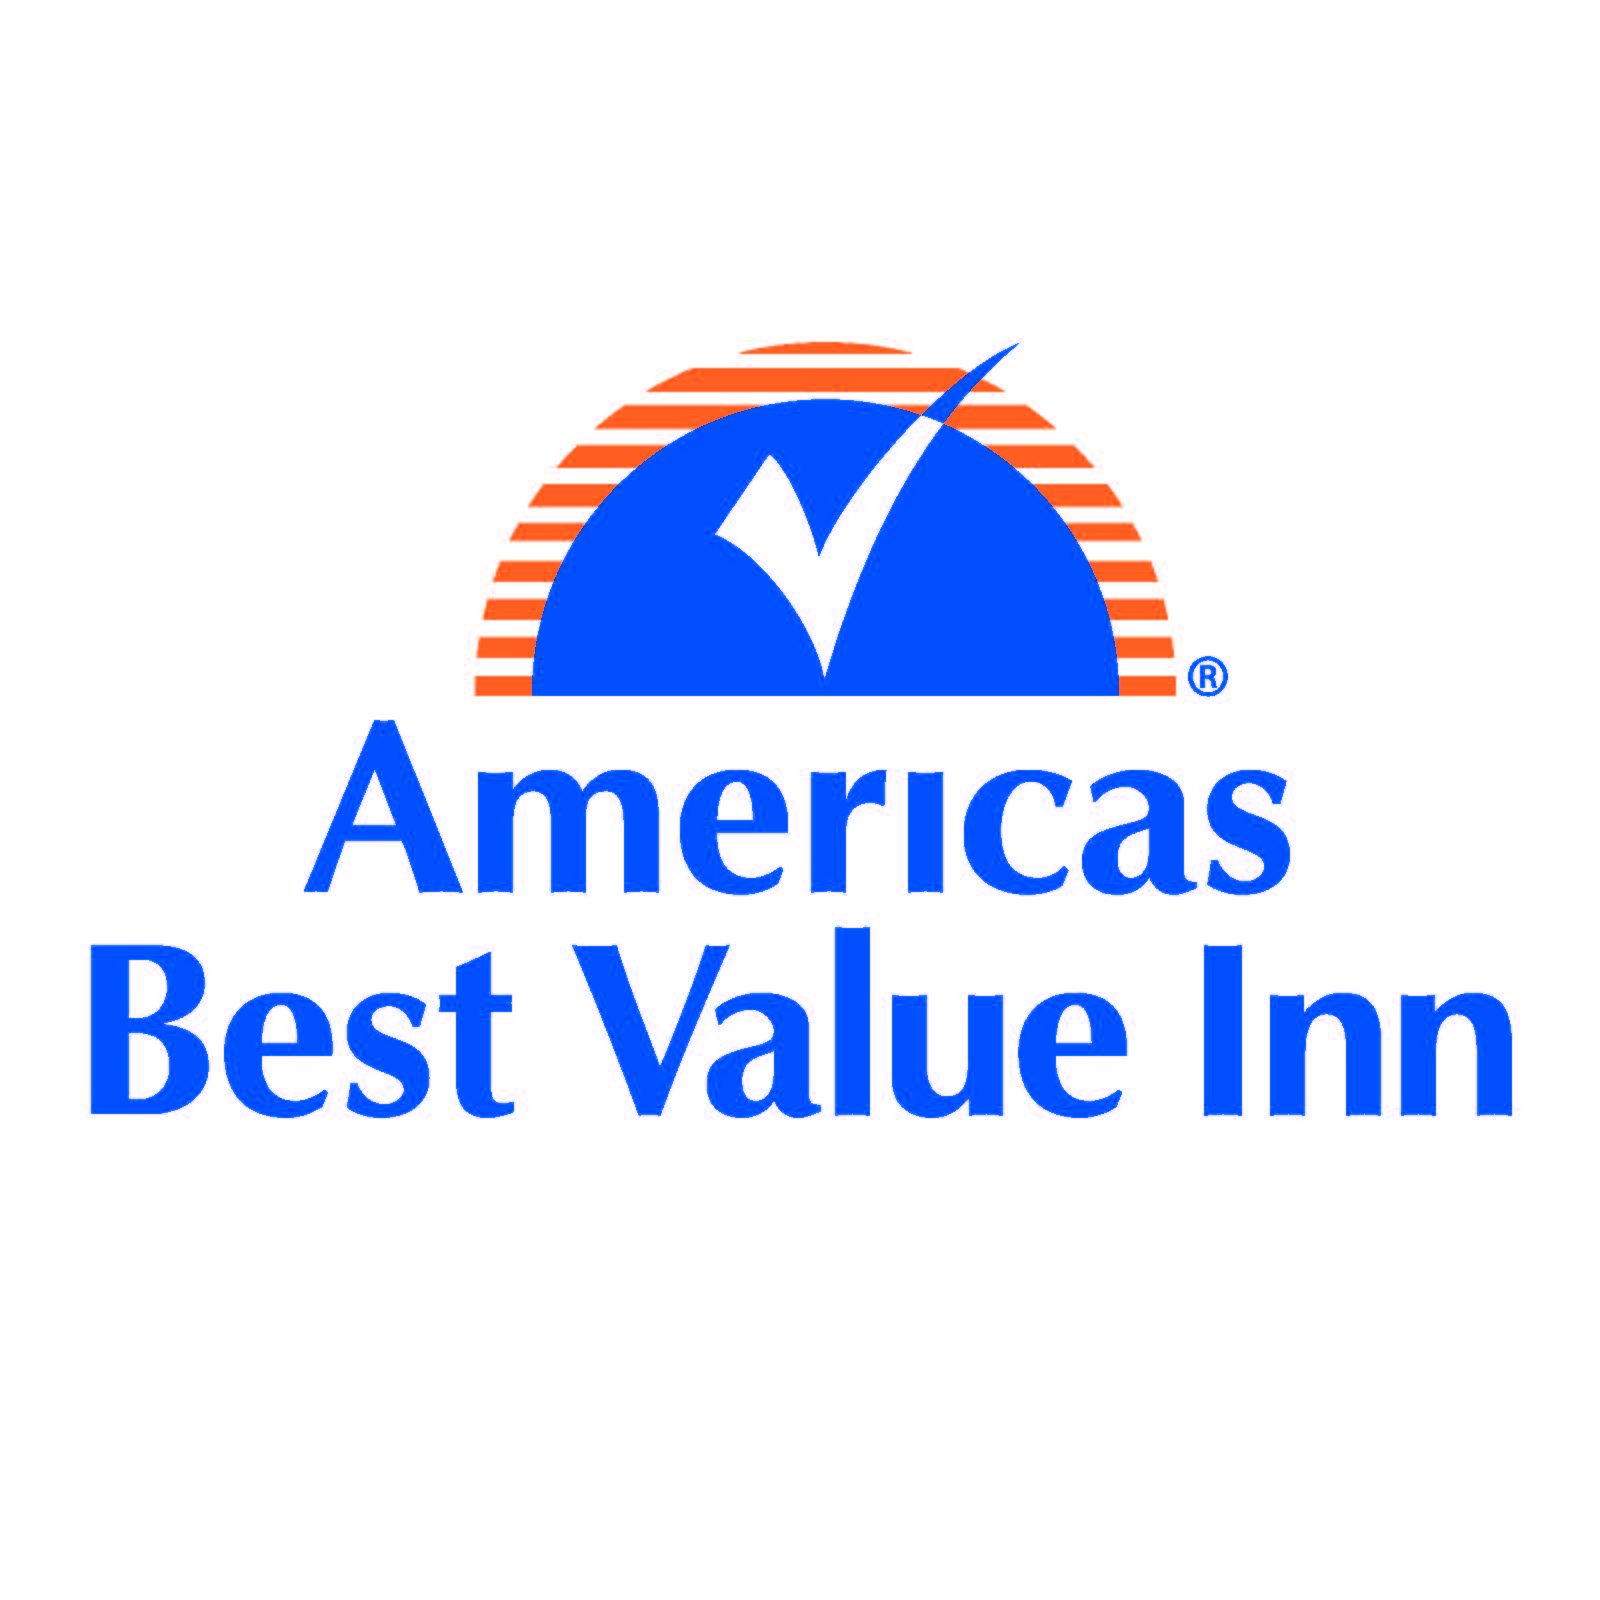 America's Best Value Inn logo